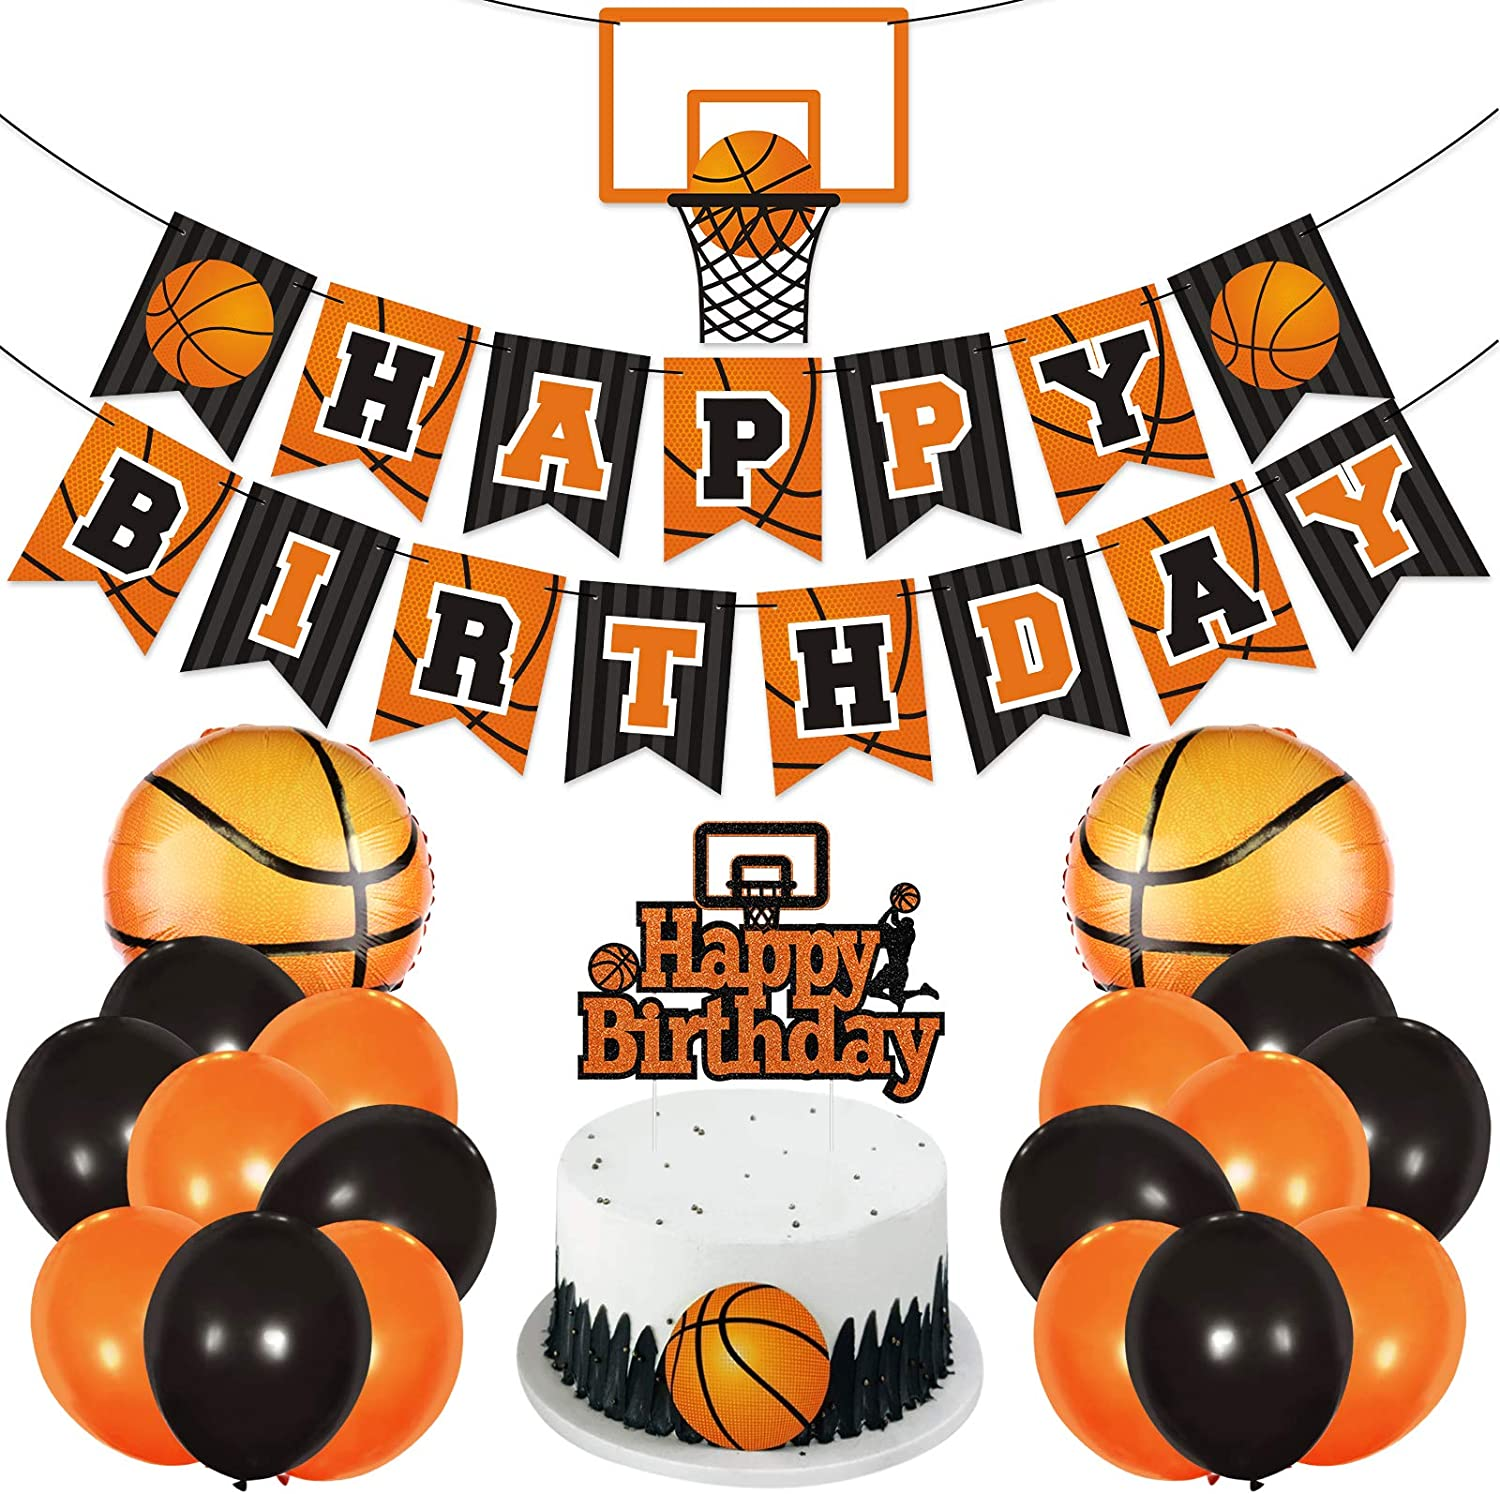 Basketball Birthday Party Decoration Slam Teenagers Ranking TOP8 Industry No. 1 Ad Dunk Kids